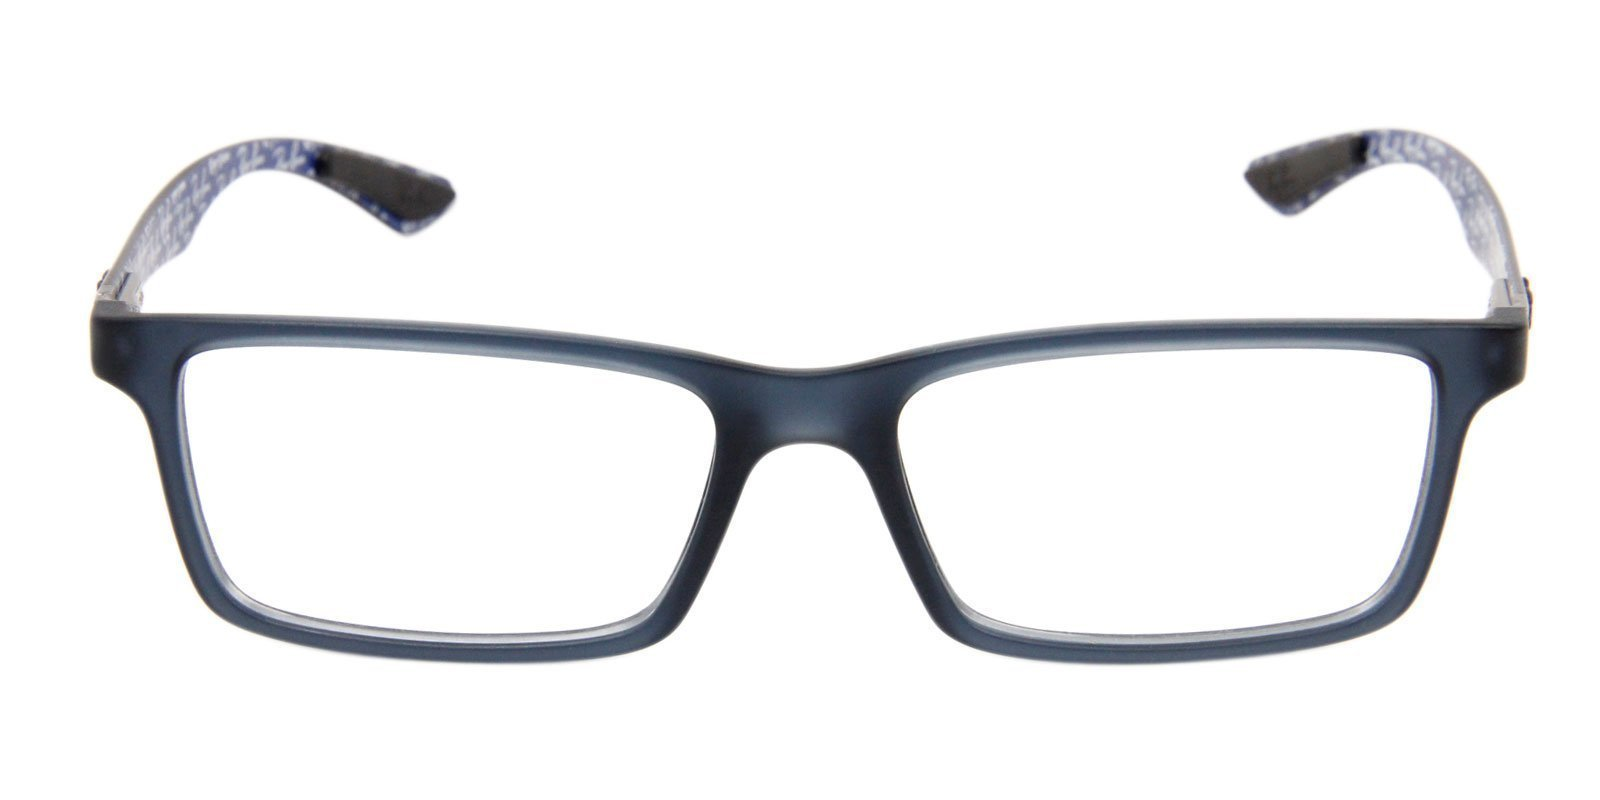 Ray Ban Rx - RX8901 Blue Rectangular Unisex Eyeglasses - 55mm-Eyeglasses-Designer Eyes